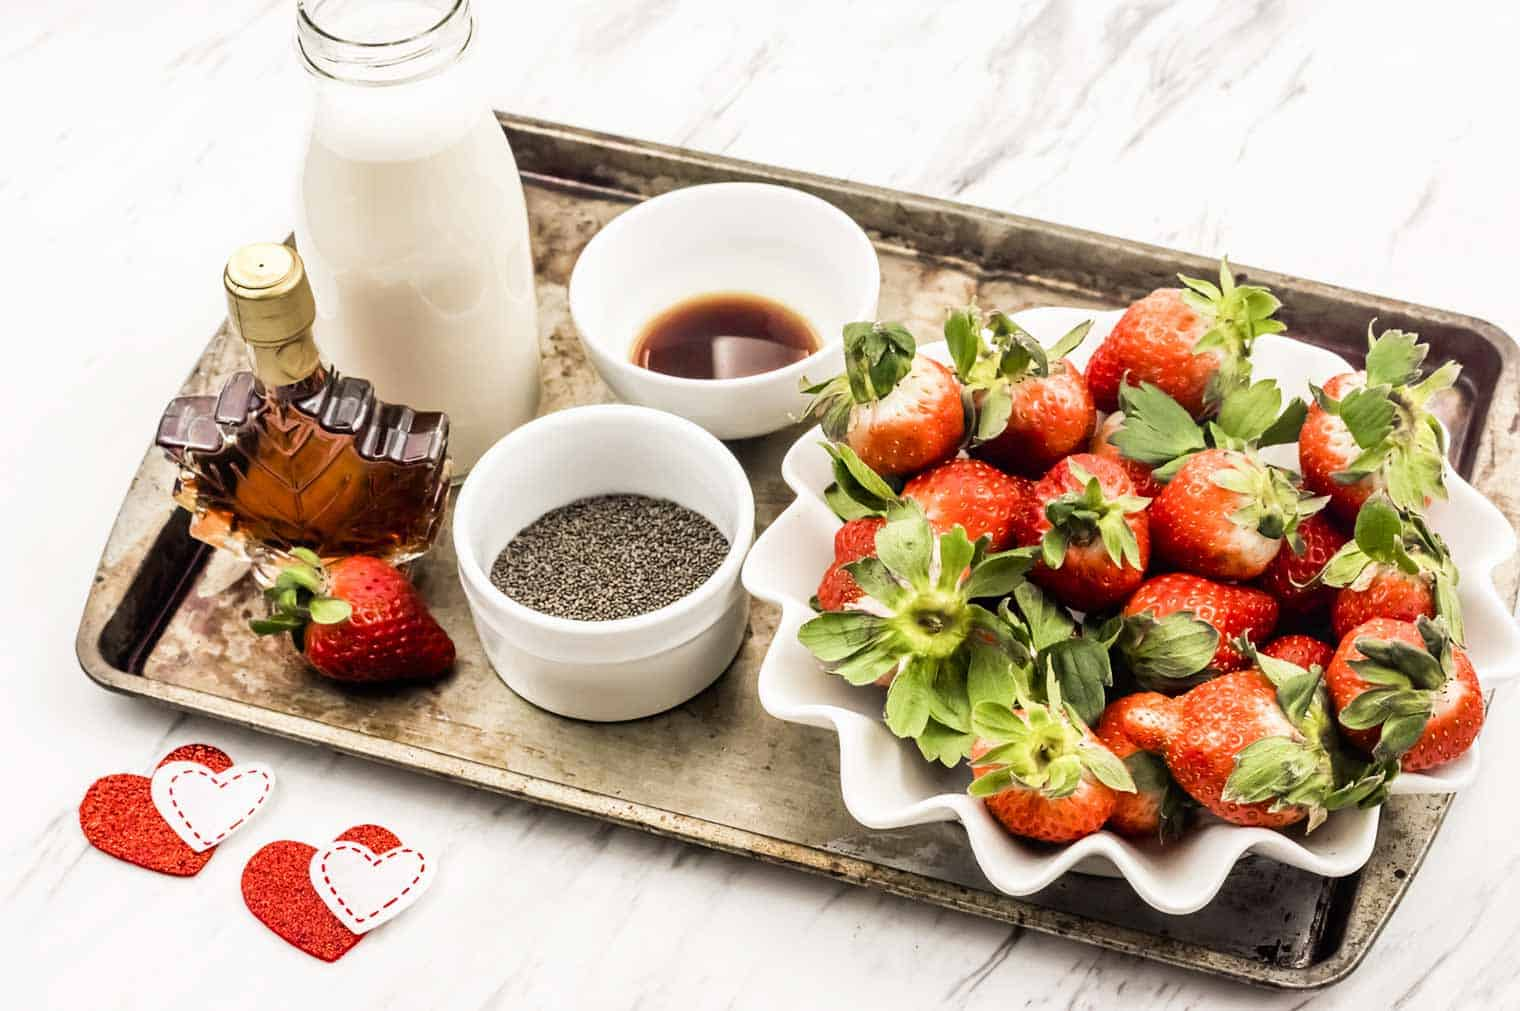 milk, chia seeds, maple syrups and strawberries in dishes on a tray, to make chia seed pudding